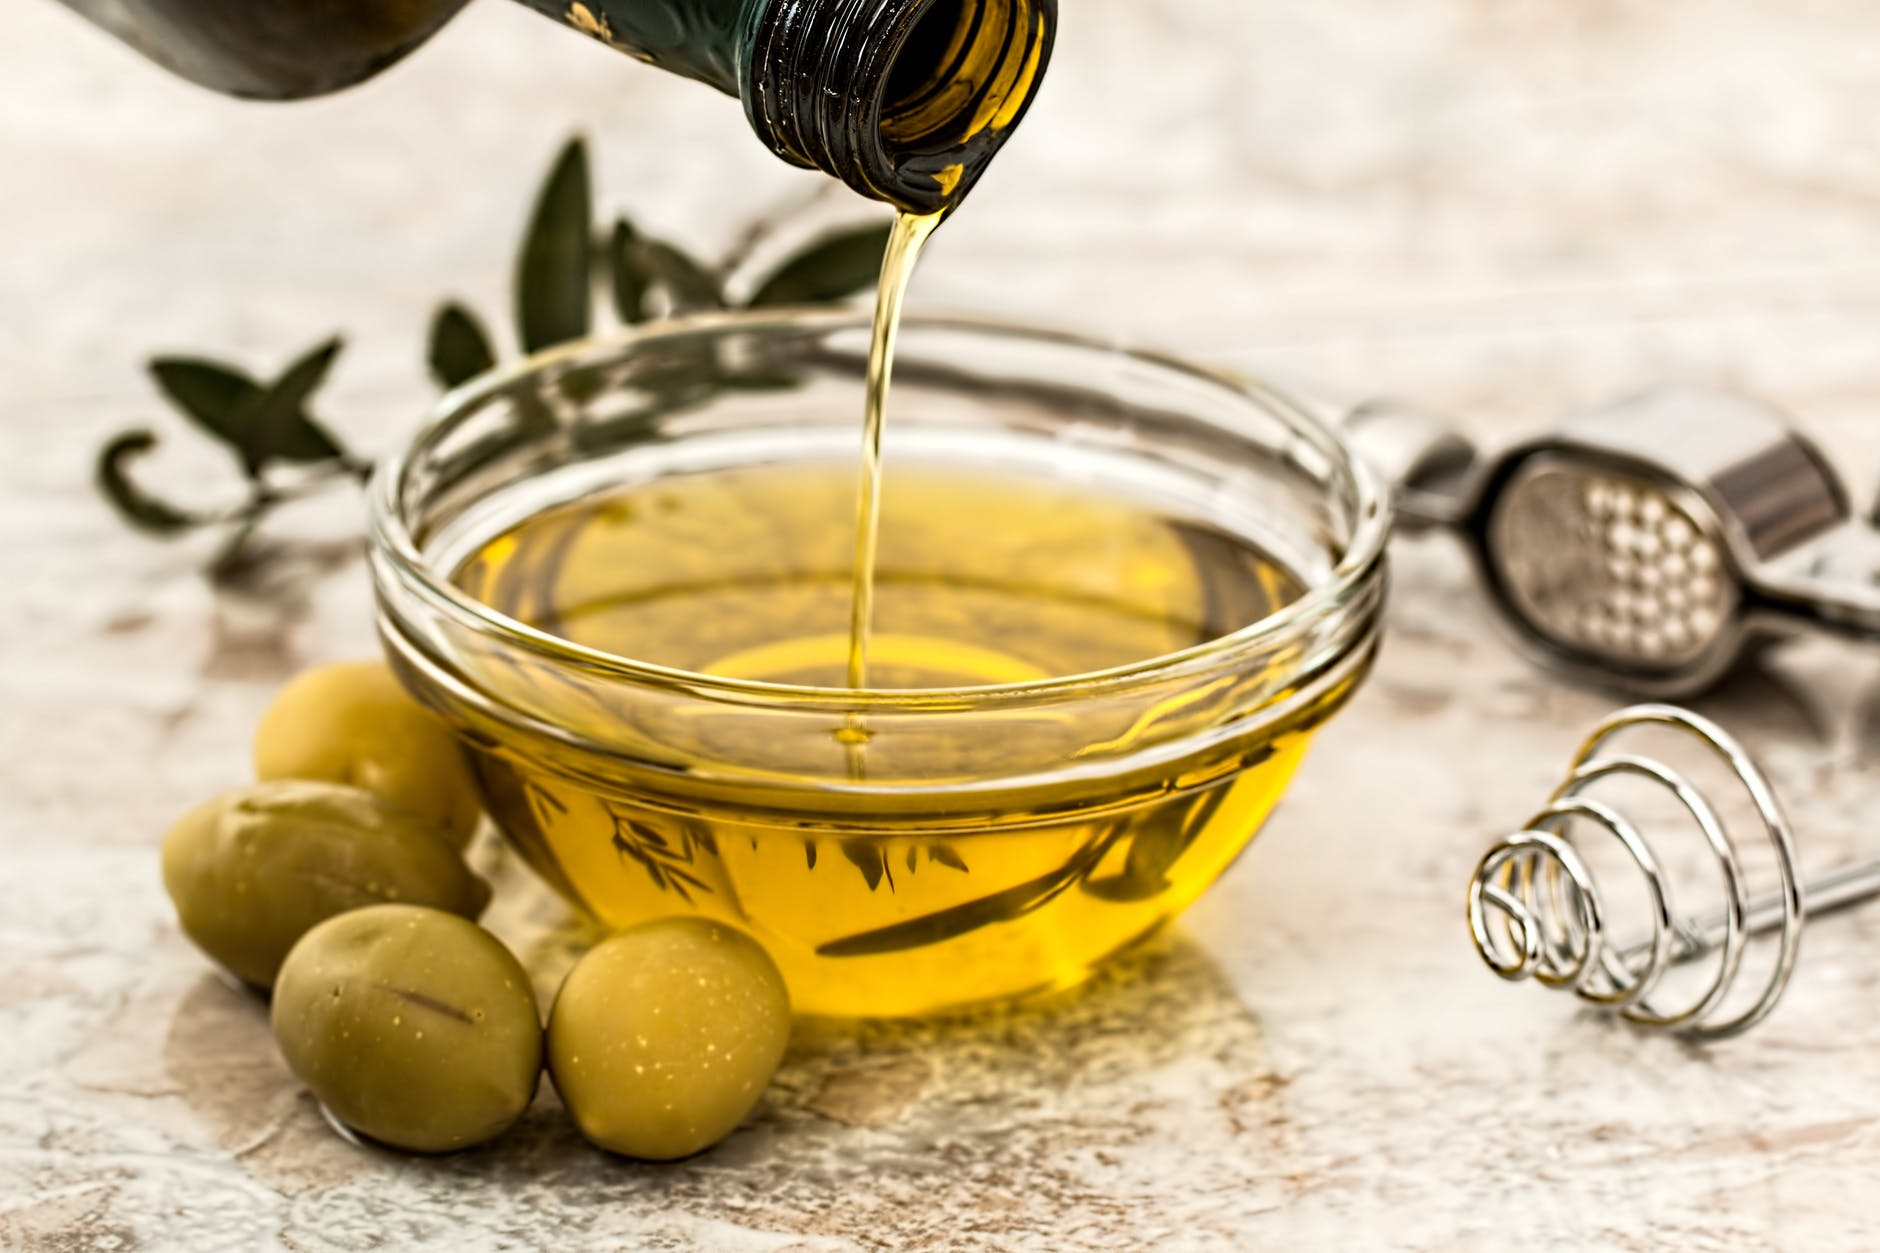 Photo by Pixabay Olive oil being poured from a dark bottle into a small bowl. The bowl is on a counter with a few green olives, olive leaves, and the tools used to press the oil.